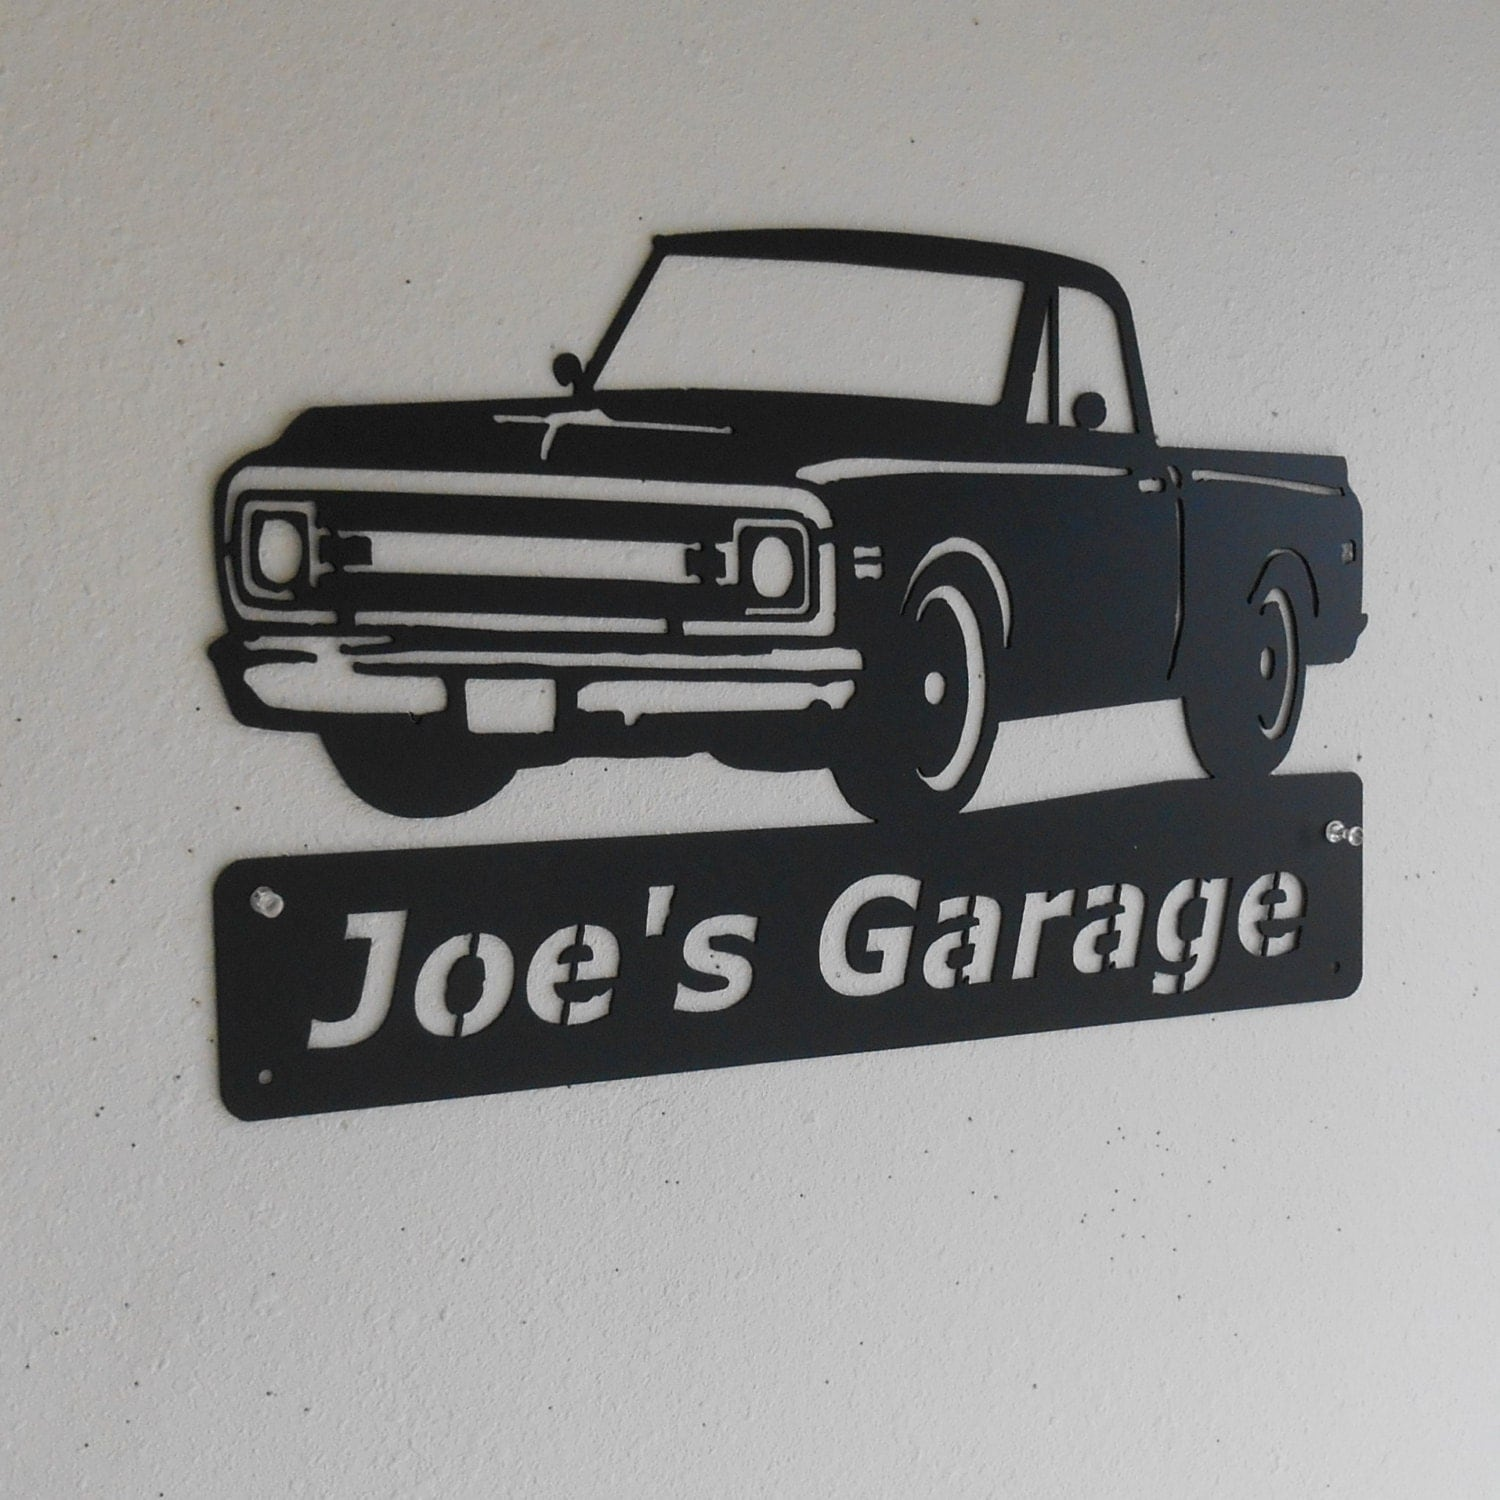 Man Cave Trucks For Sale : Classic chevrolet truck personalized man cave wall decor